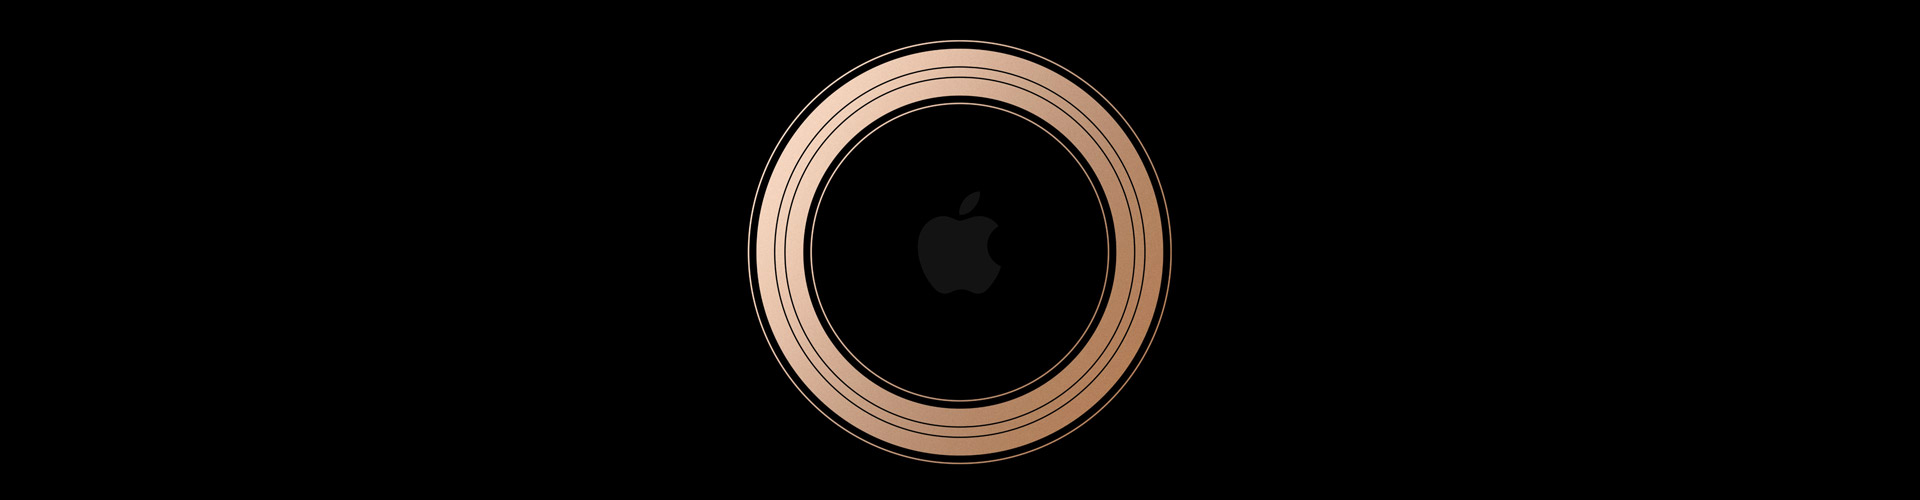 Apple's Special Event 2018